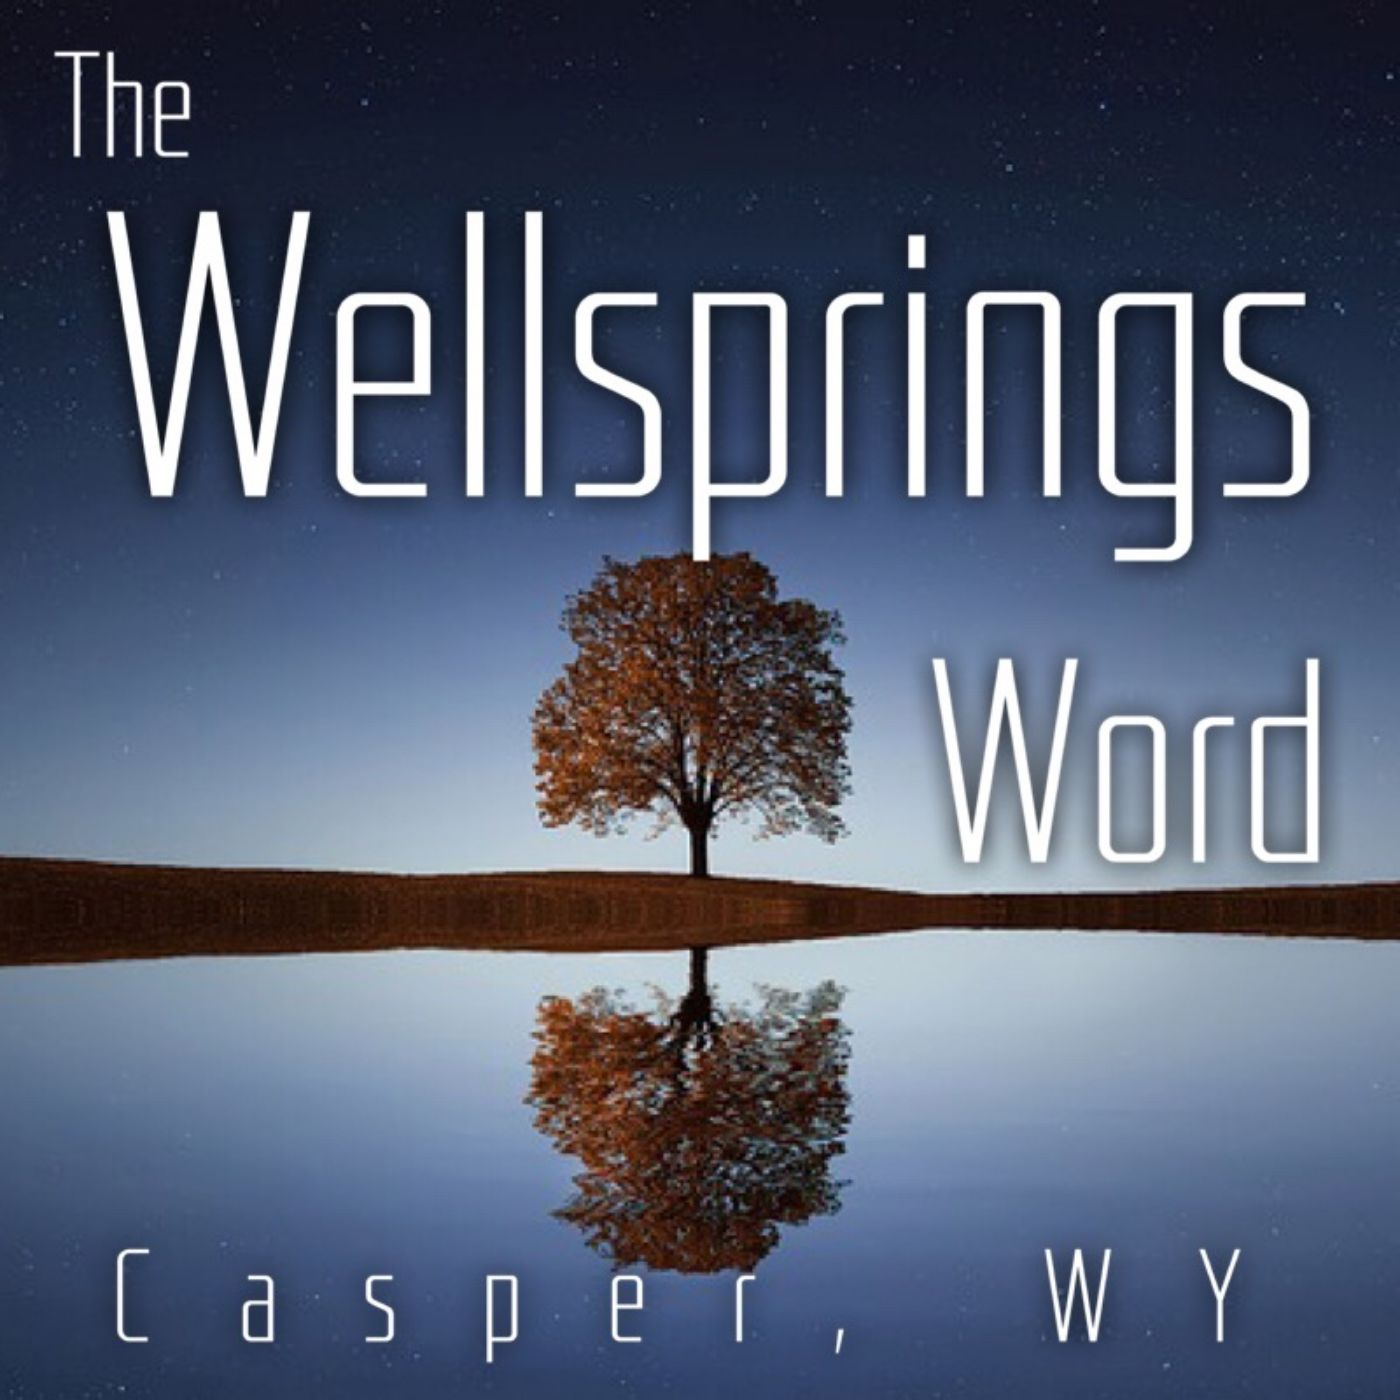 The Wellsprings Word